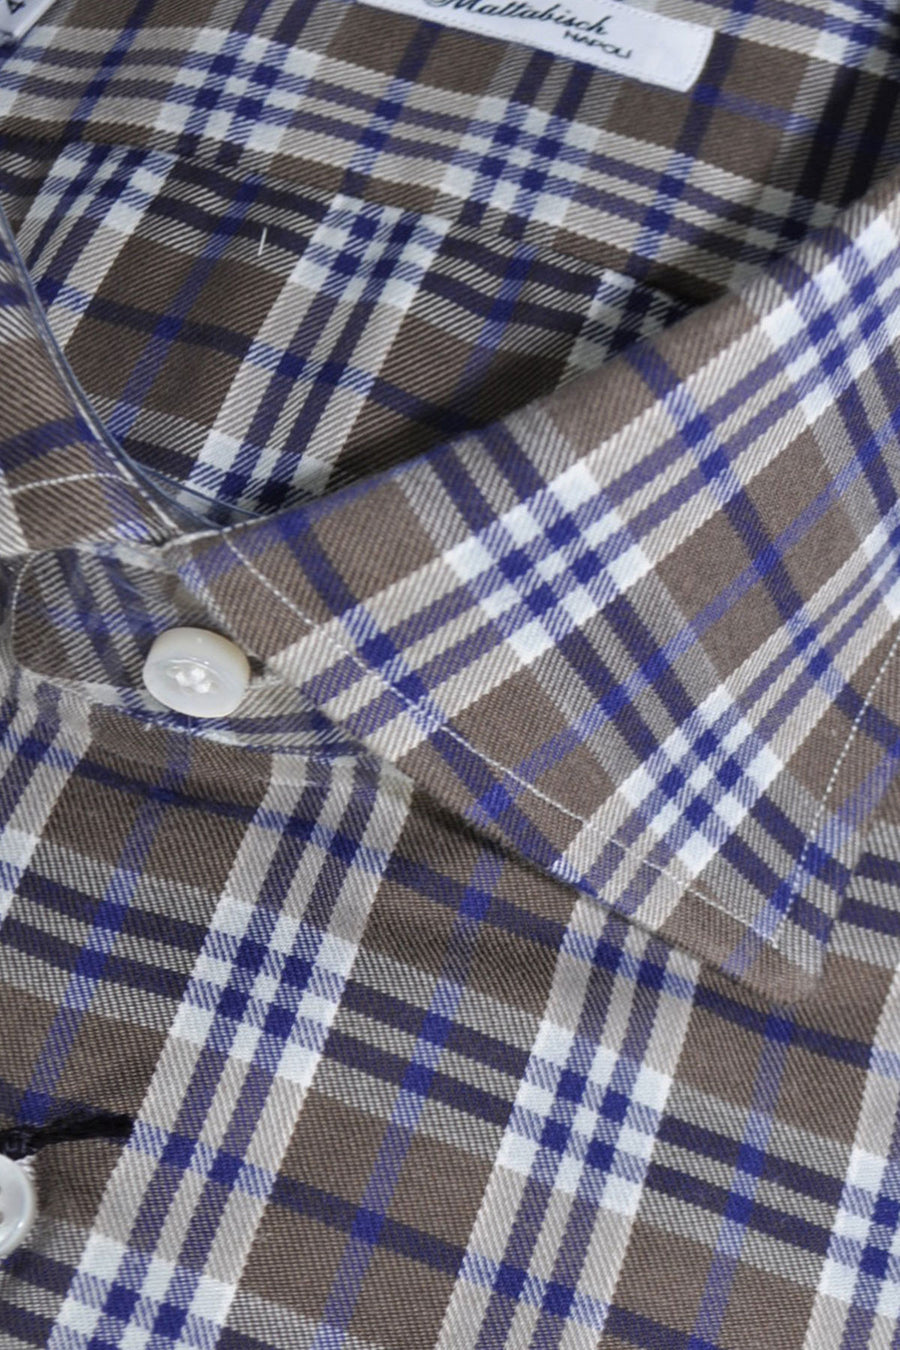 Mattabisch Sport Shirt Brown Navy Plaid Check Flannel Cotton